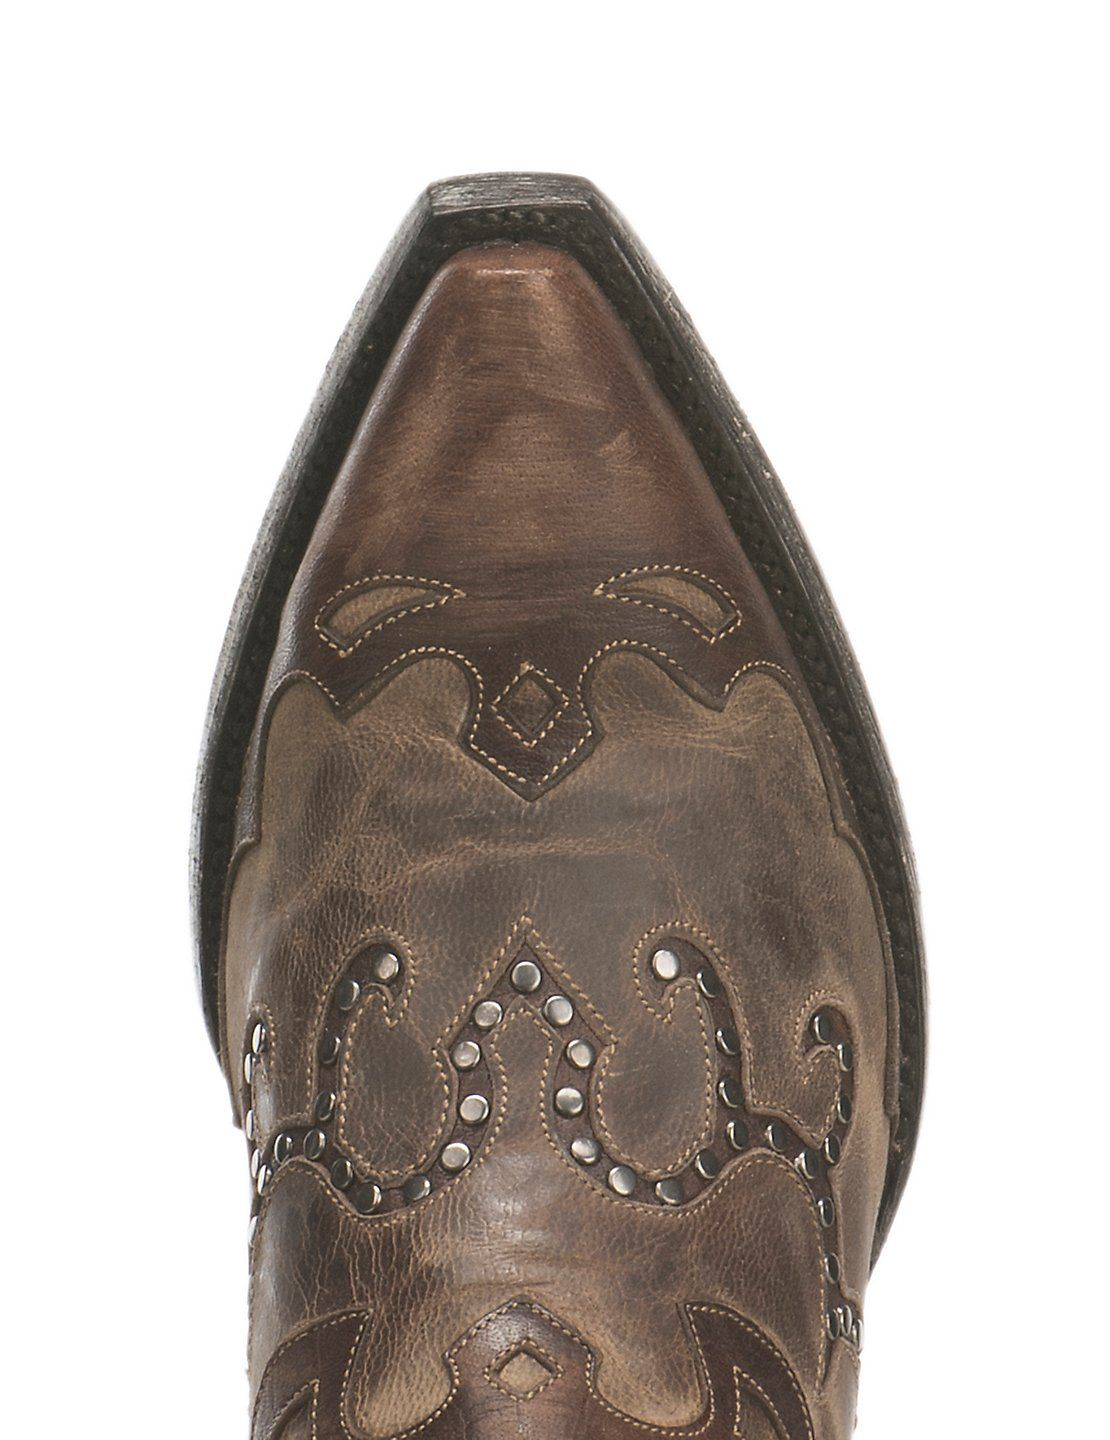 6fe4b133810 Cavender's by Old Gringo Women's Antique Brown with Studded Inlays ...